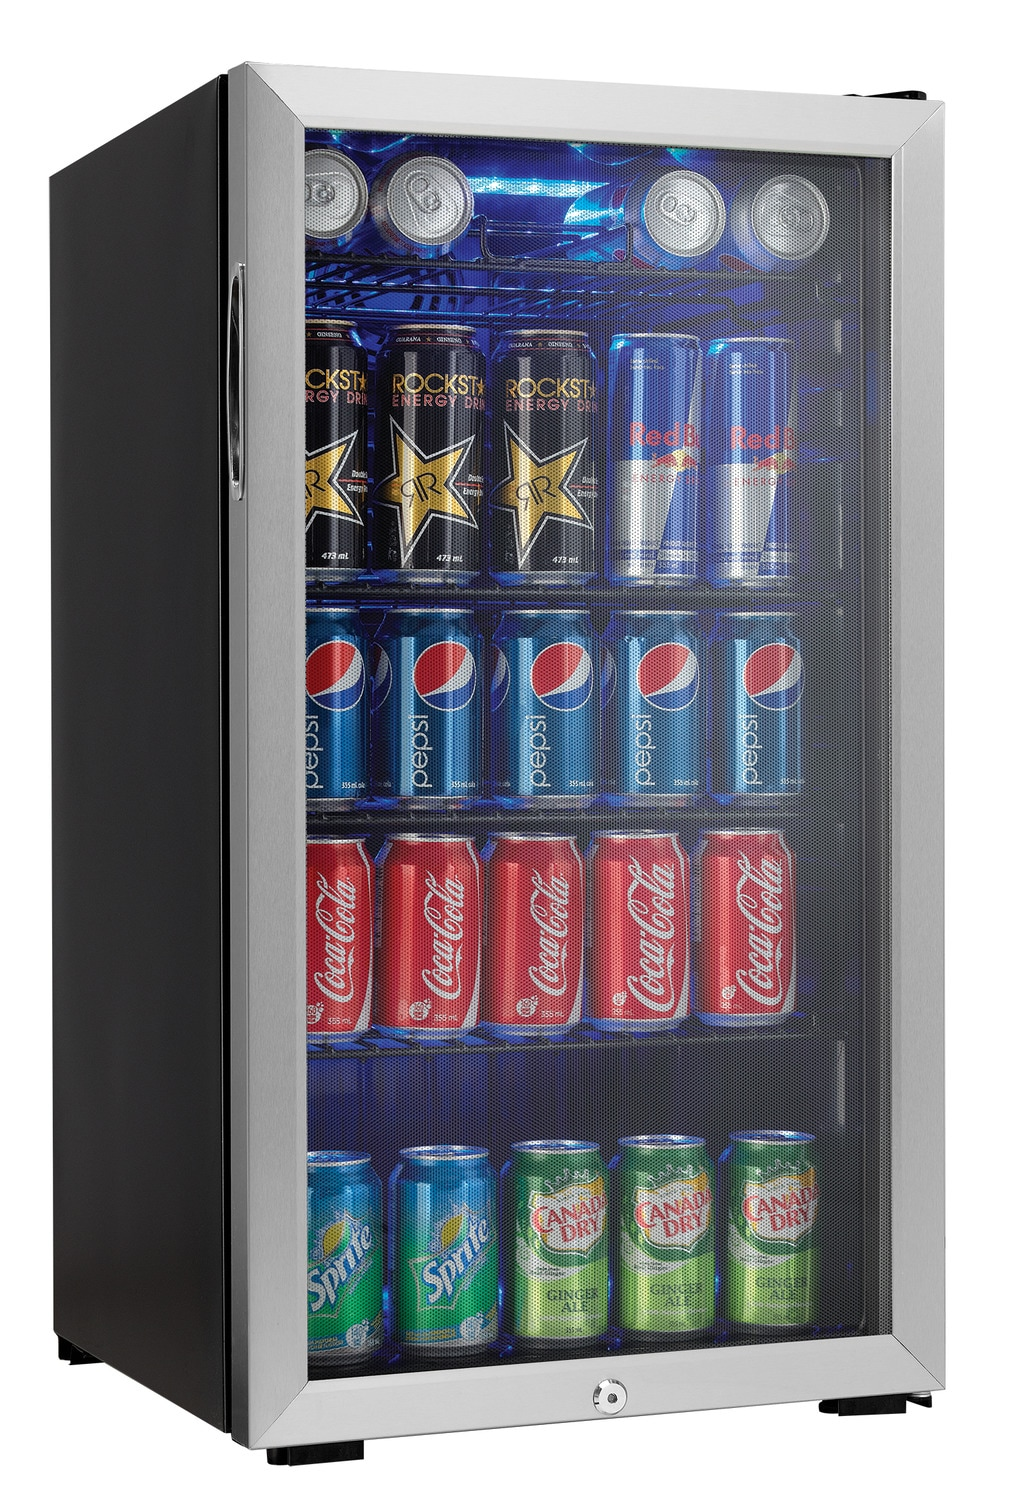 Refrigerators and Freezers - Danby Stainless Steel Beverage Centre (3.3 Cu. Ft.) - DBC120CBLS